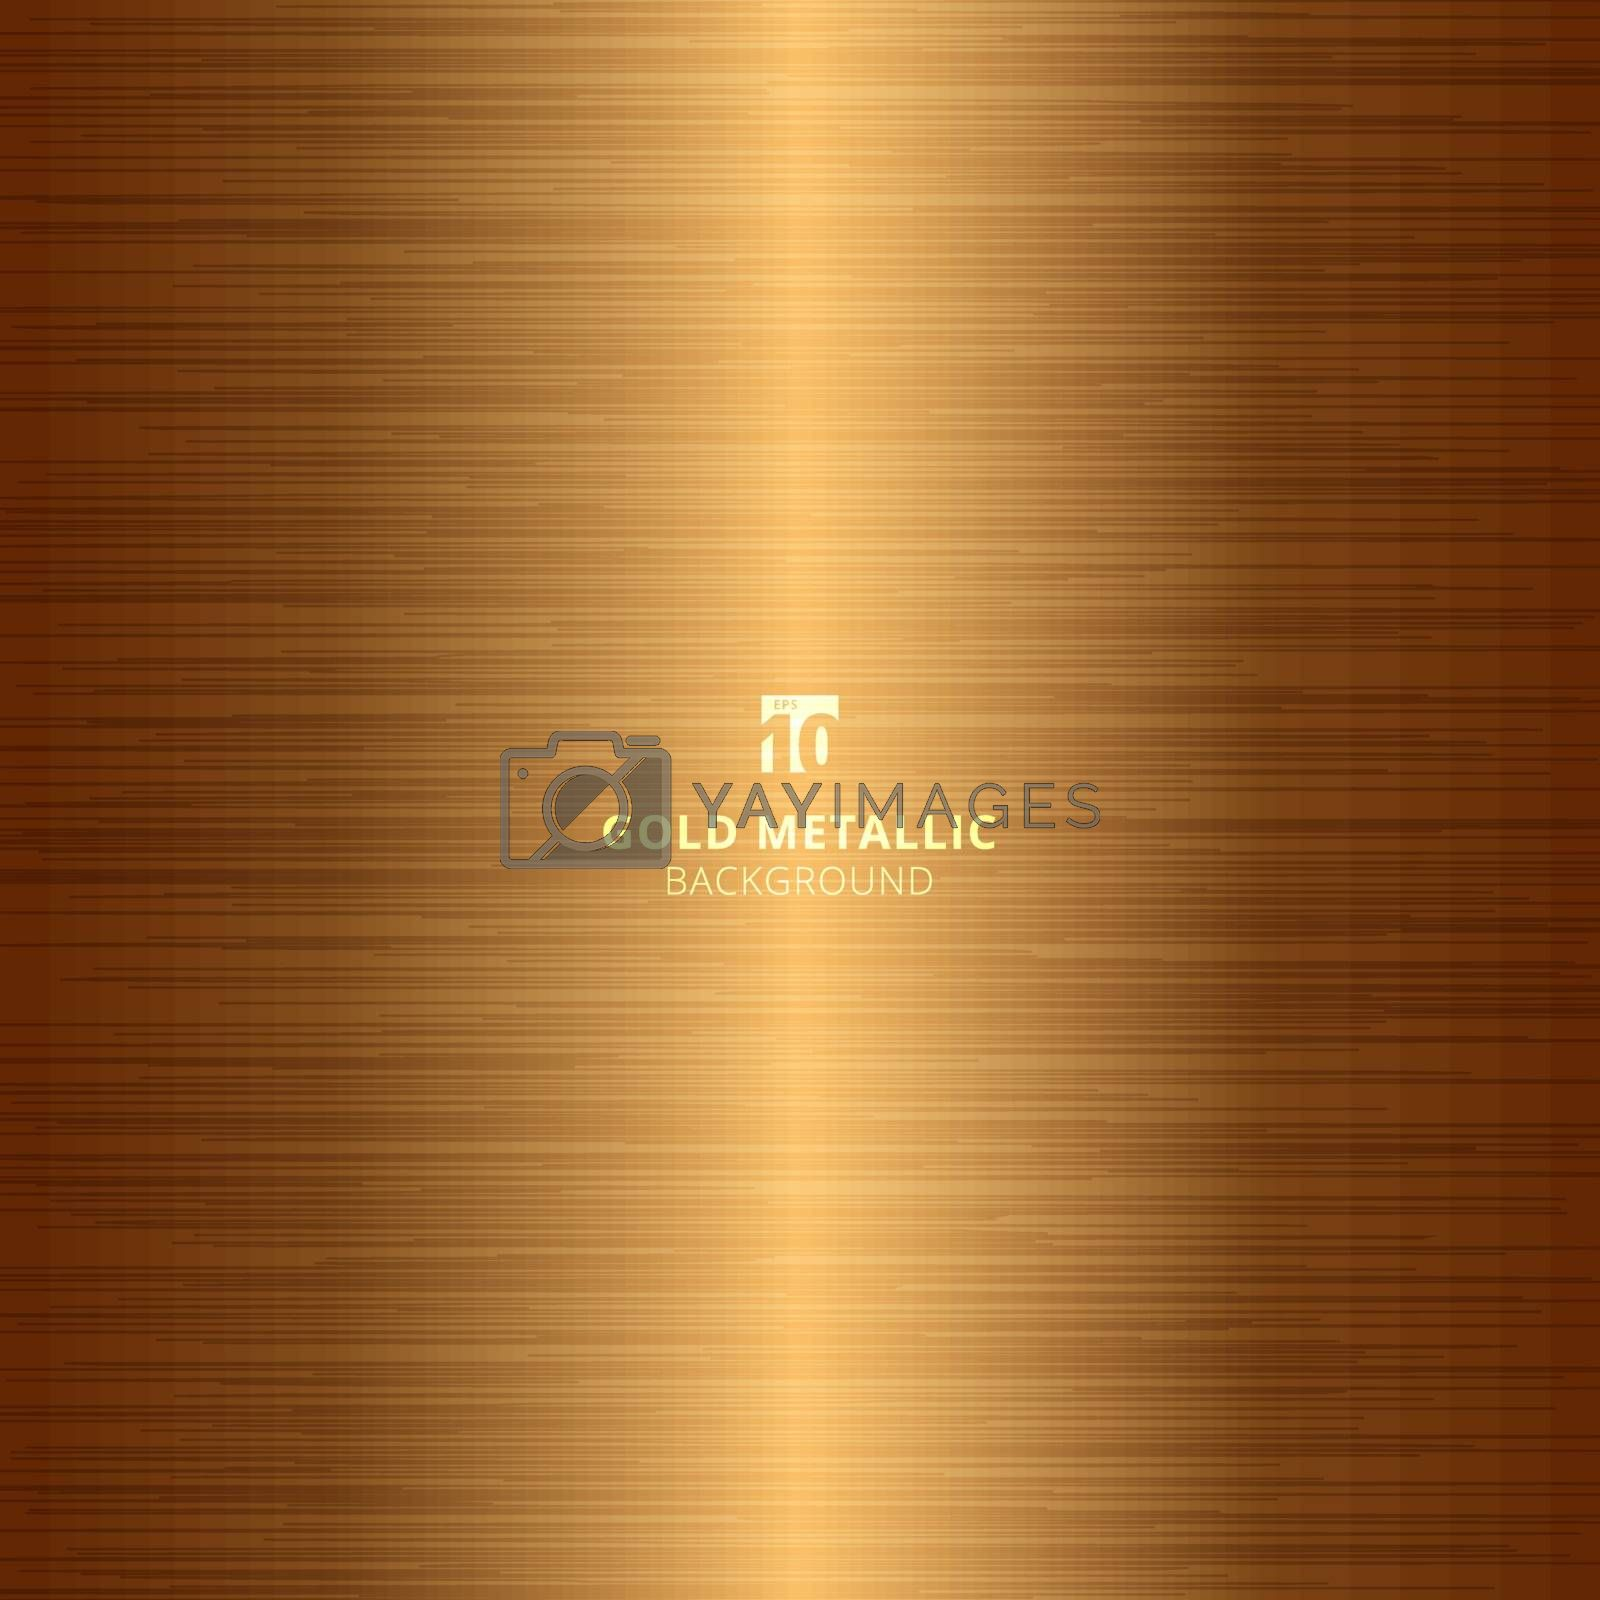 Gold metallic metal polished background and texture. Vector illustration